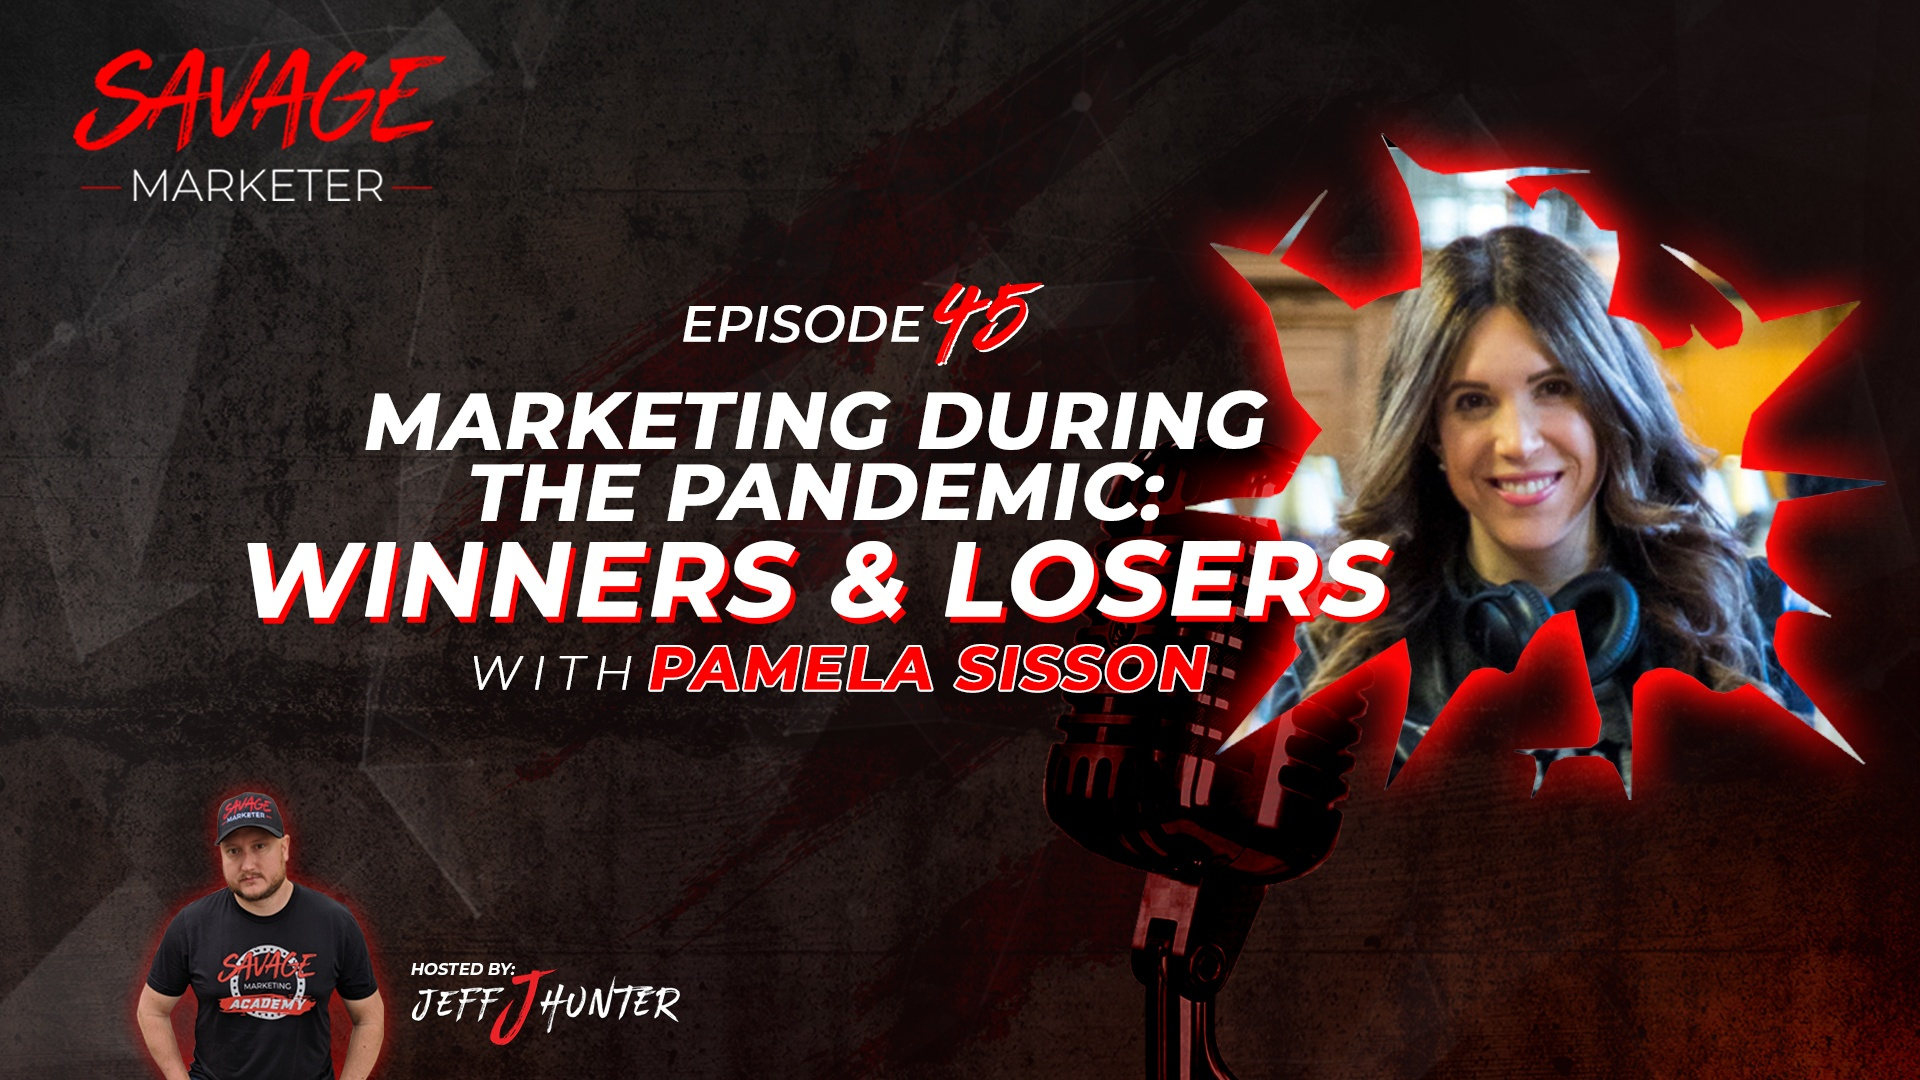 Marketing during the pandemic: winners and losers